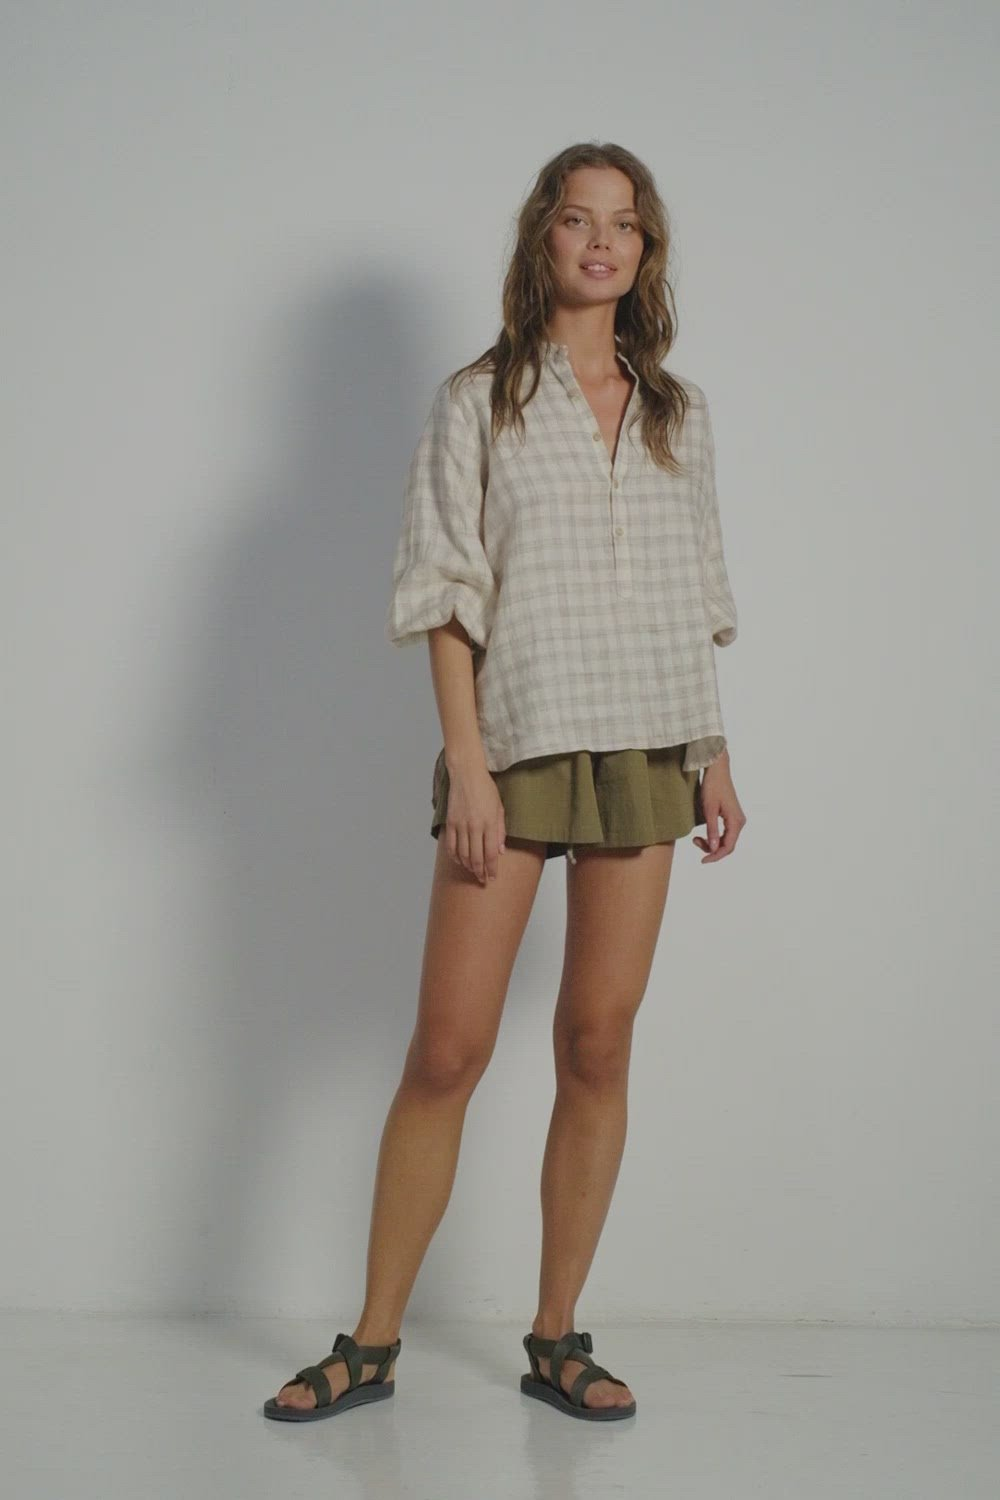 A woman wearing a summer look by Lilya: linen check blouse and khaki shorts